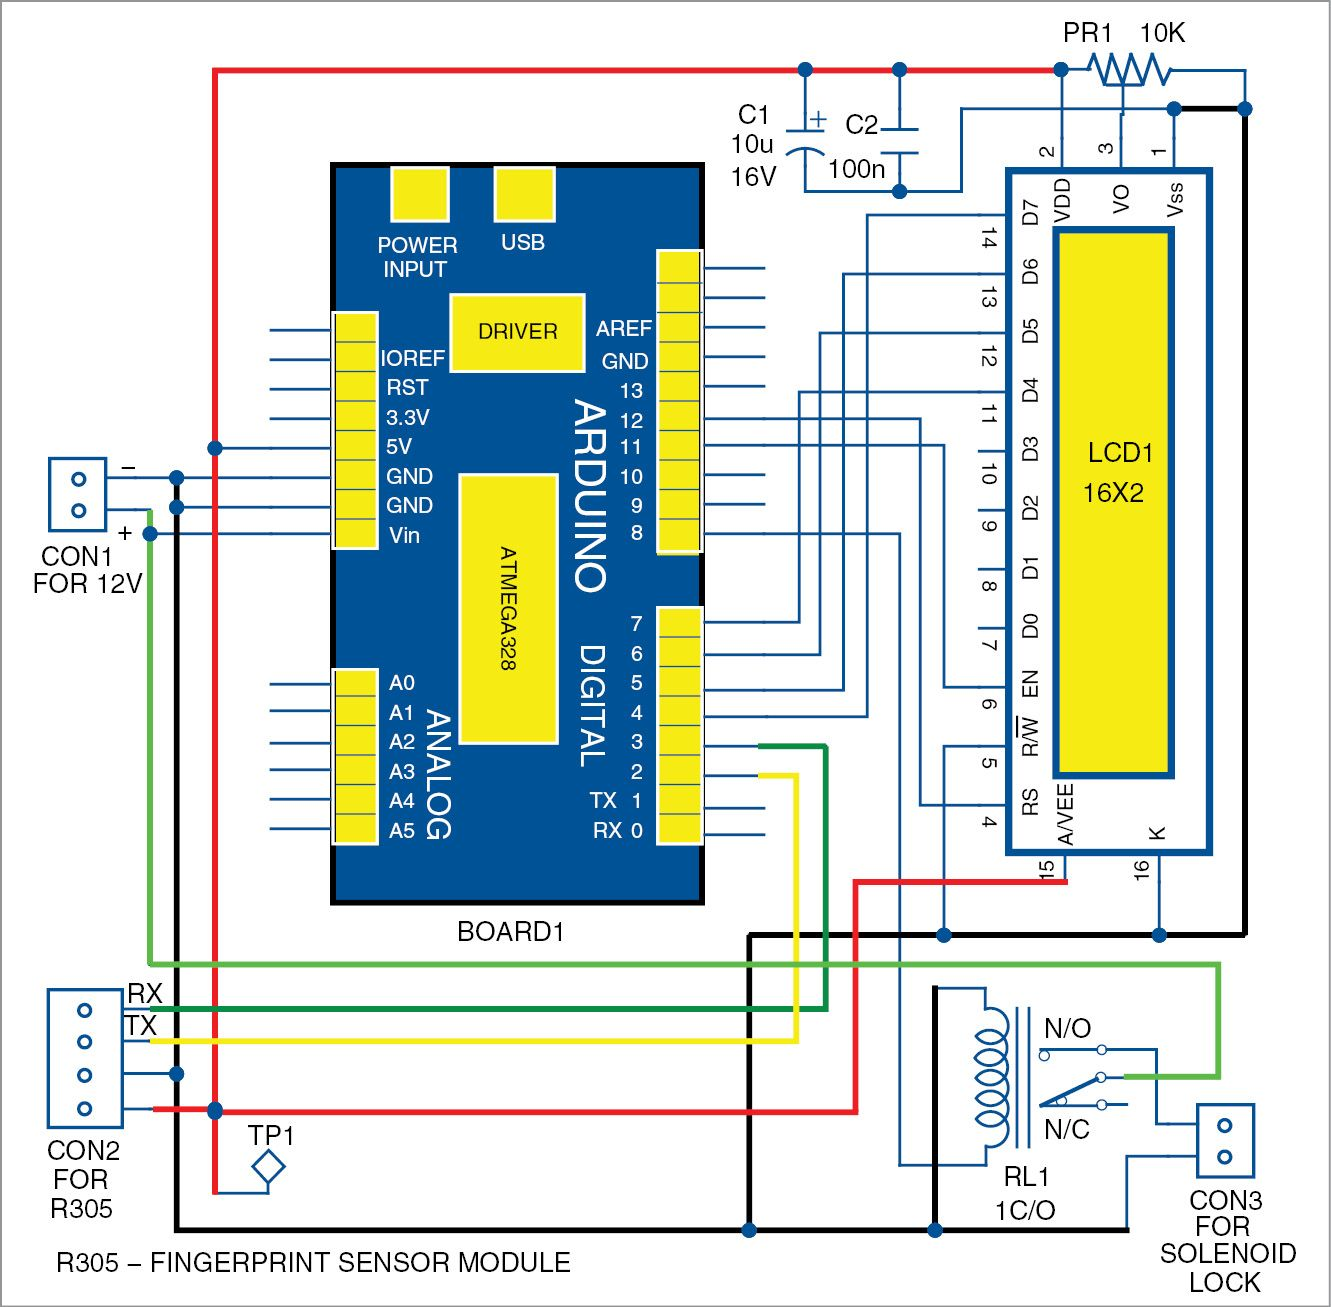 Simplisafe Ms1 Extra Motion Sensor In 2018 Circuit Diagrams Degree Electronics Forum Circuits Projects And Microcontrollers This Simple Fingerprint Project Using Arduino Can Be Very Useful For Door Security Forensics Crime Investigation Personal Identification